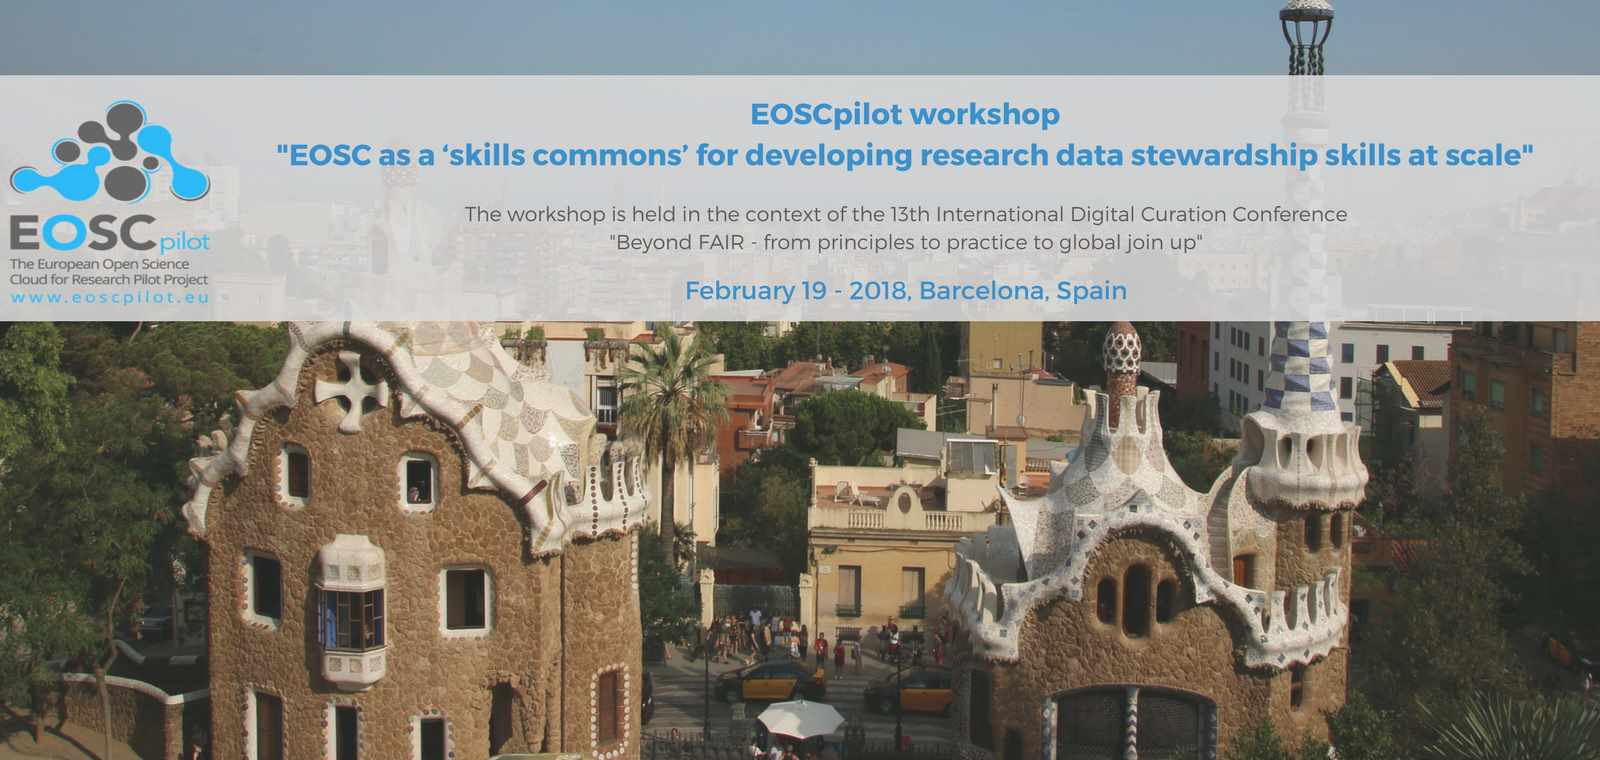 EOSC as a 'skills commons' for developing research data stewardship skills at scale